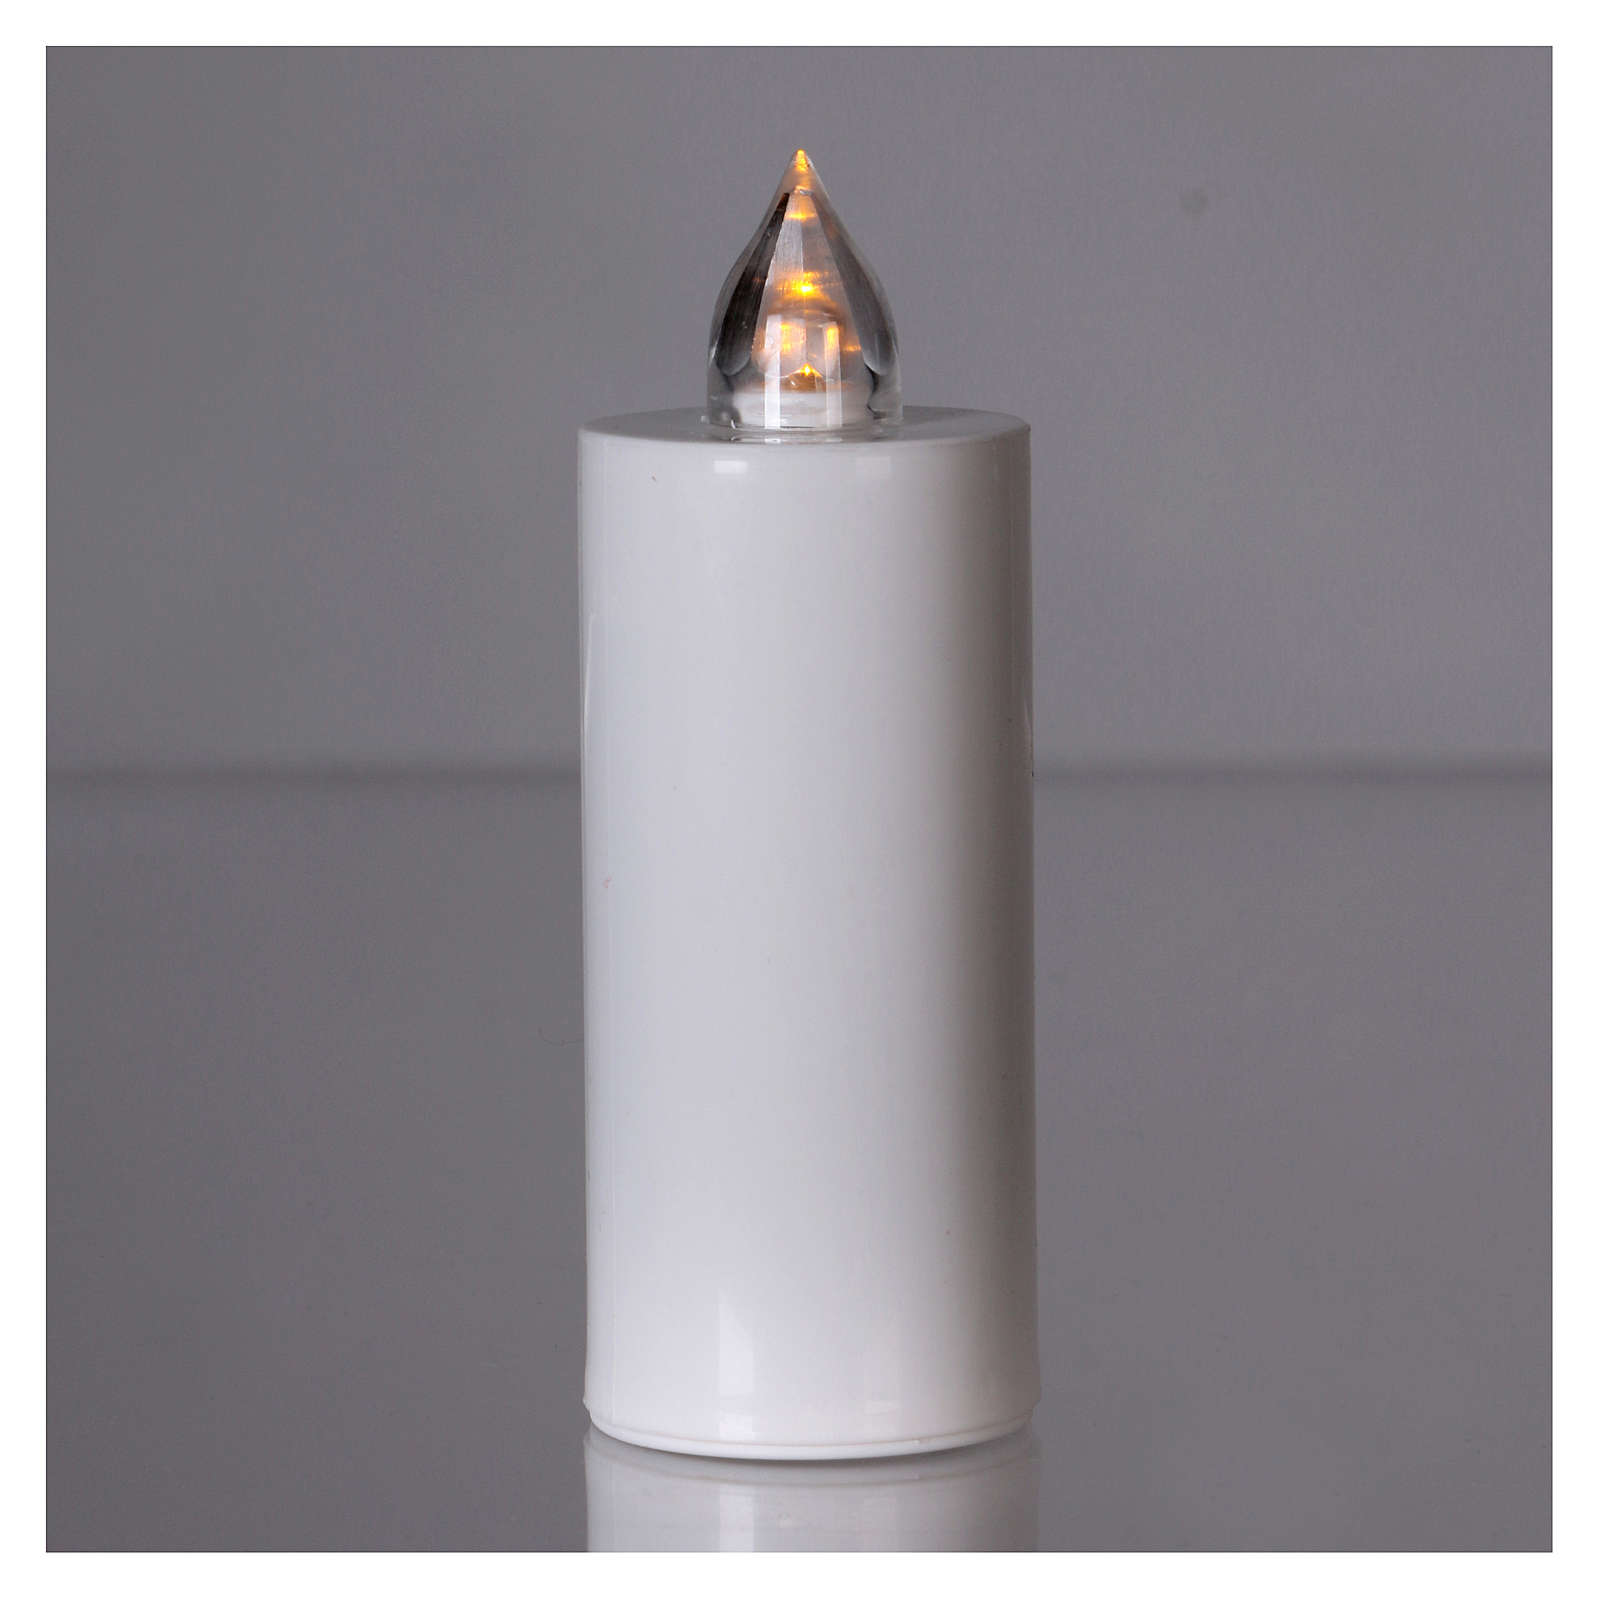 Lumada electric candle with yellow flickering light, disposable 3